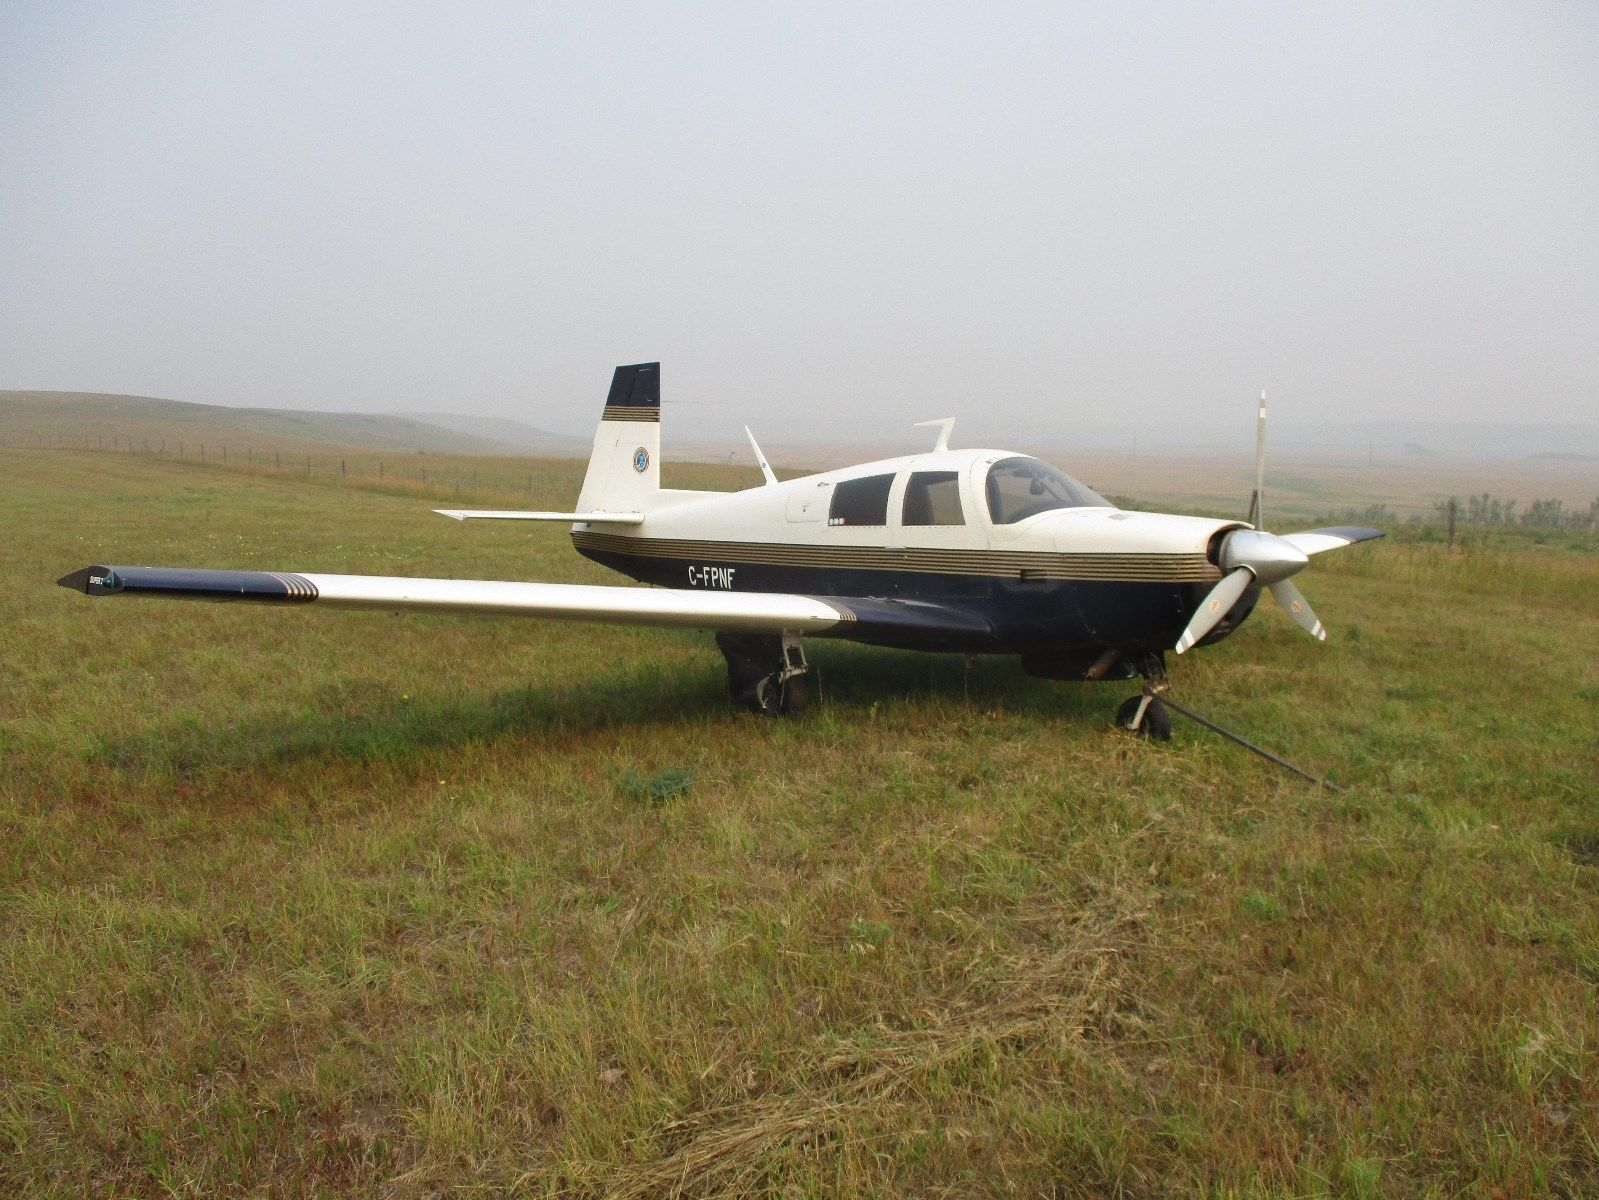 modified 1966 Mooney M20E aircraft for sale